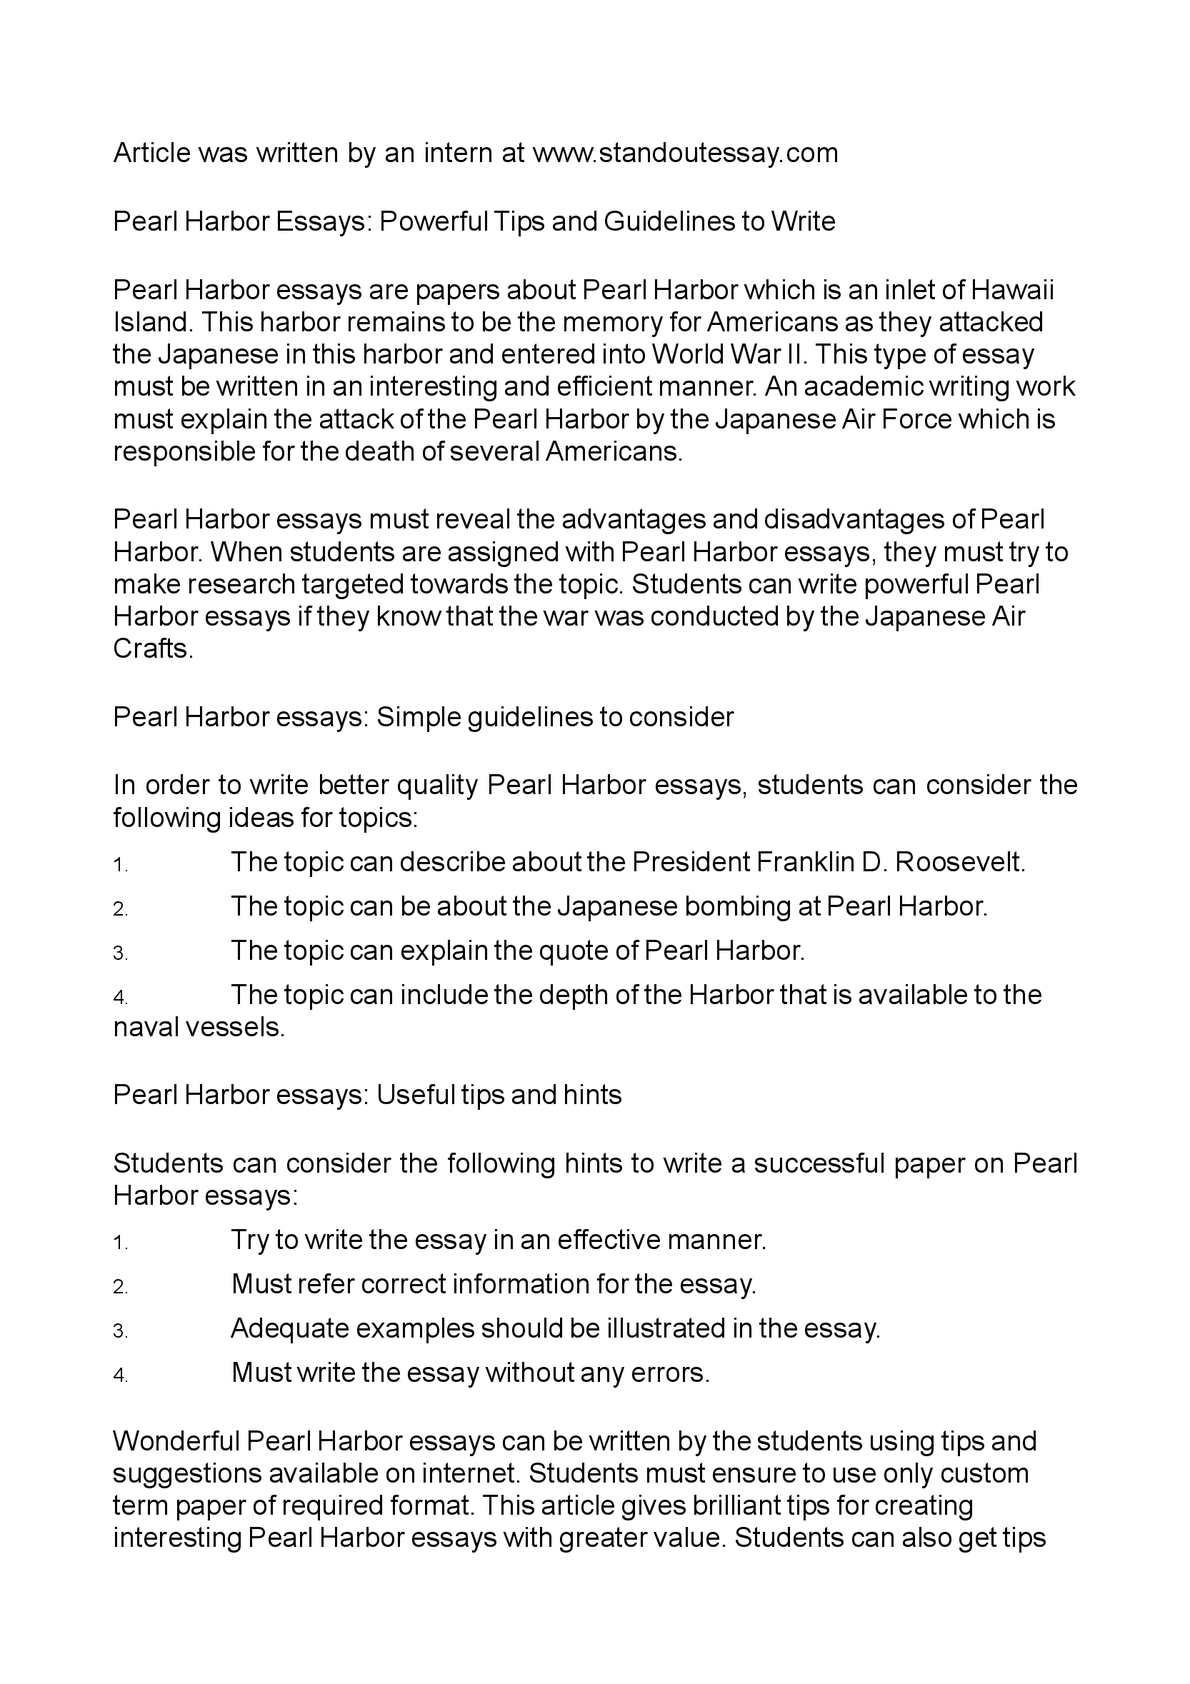 Calam o pearl harbor essays powerful tips and guidelines to write